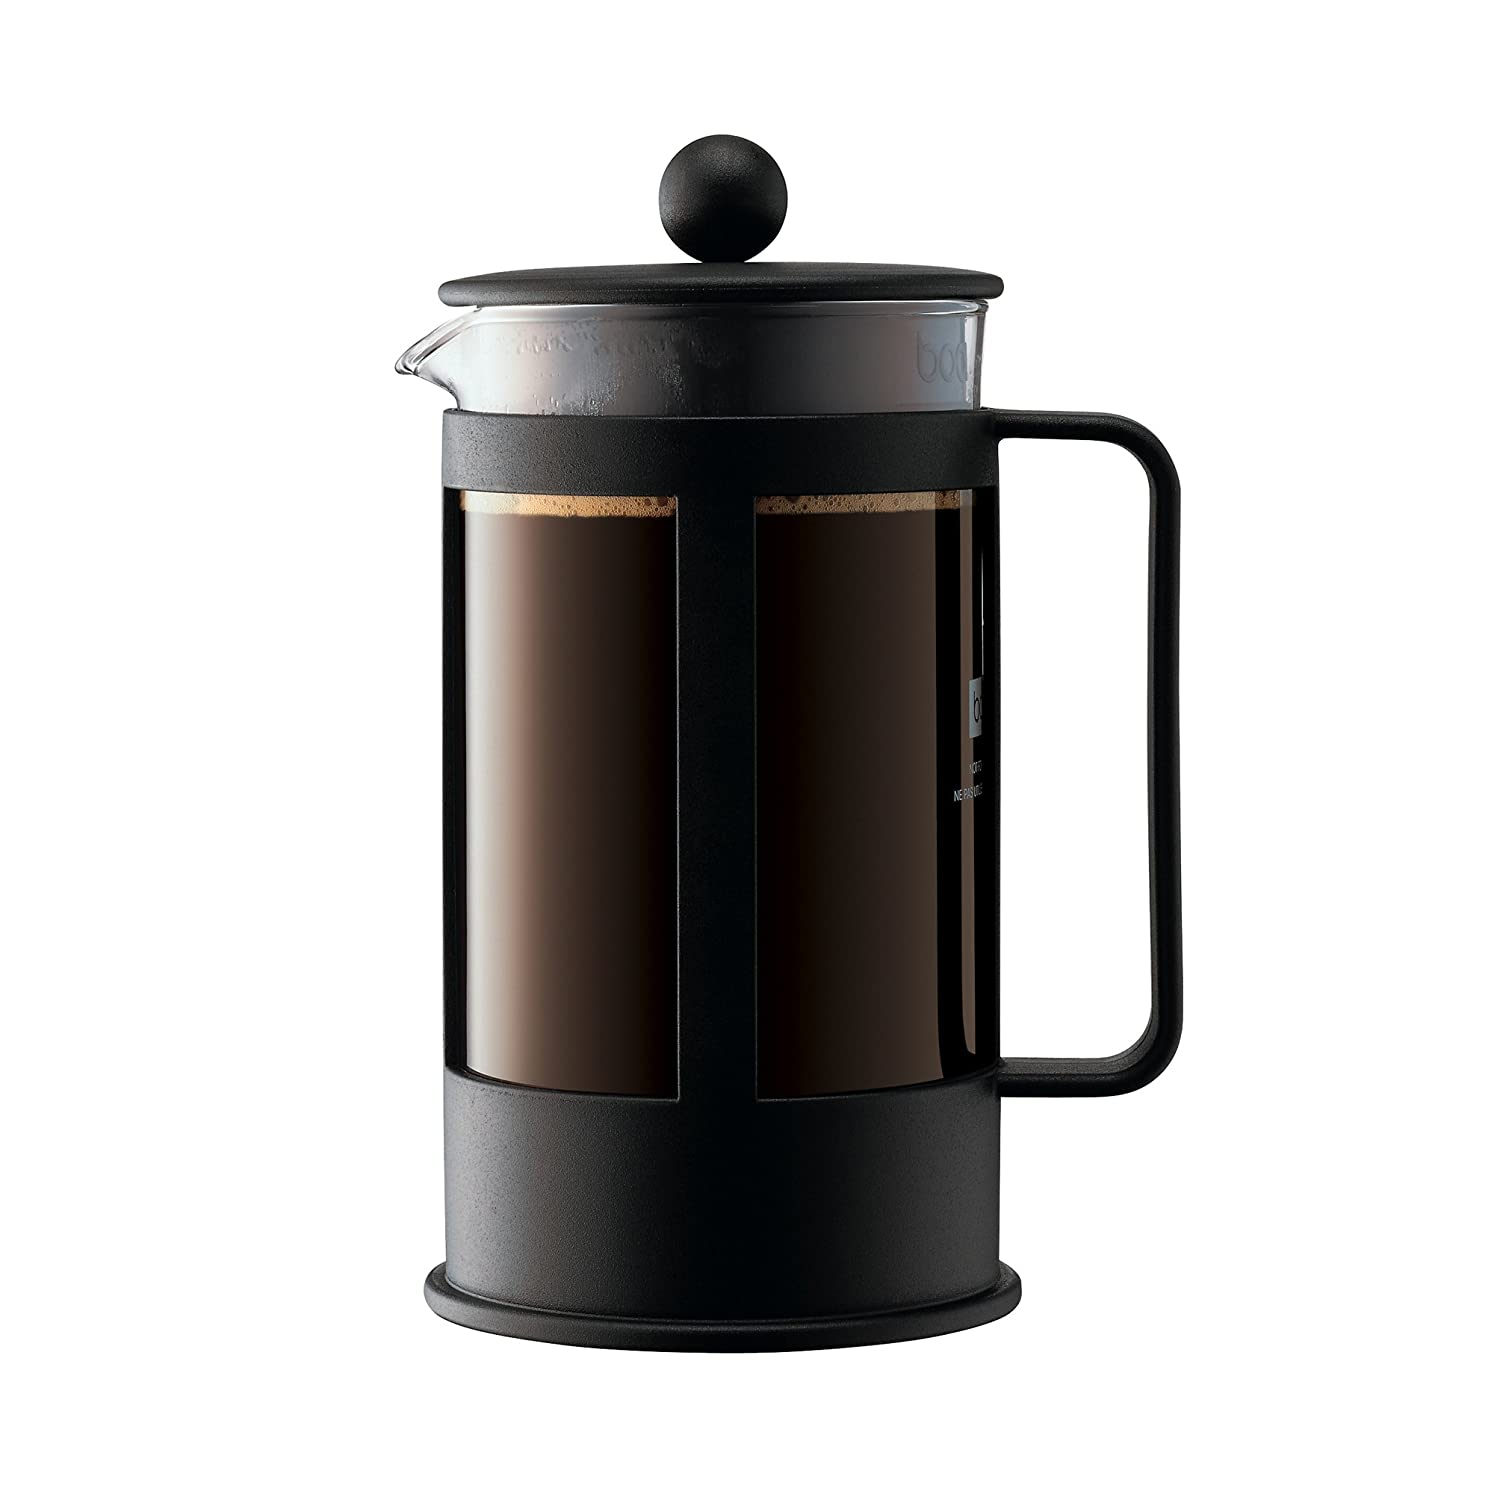 Bodum Kenya French Press Coffee Maker, Borosilicate Glass - 8-Cup (1 L), Black 1978-01